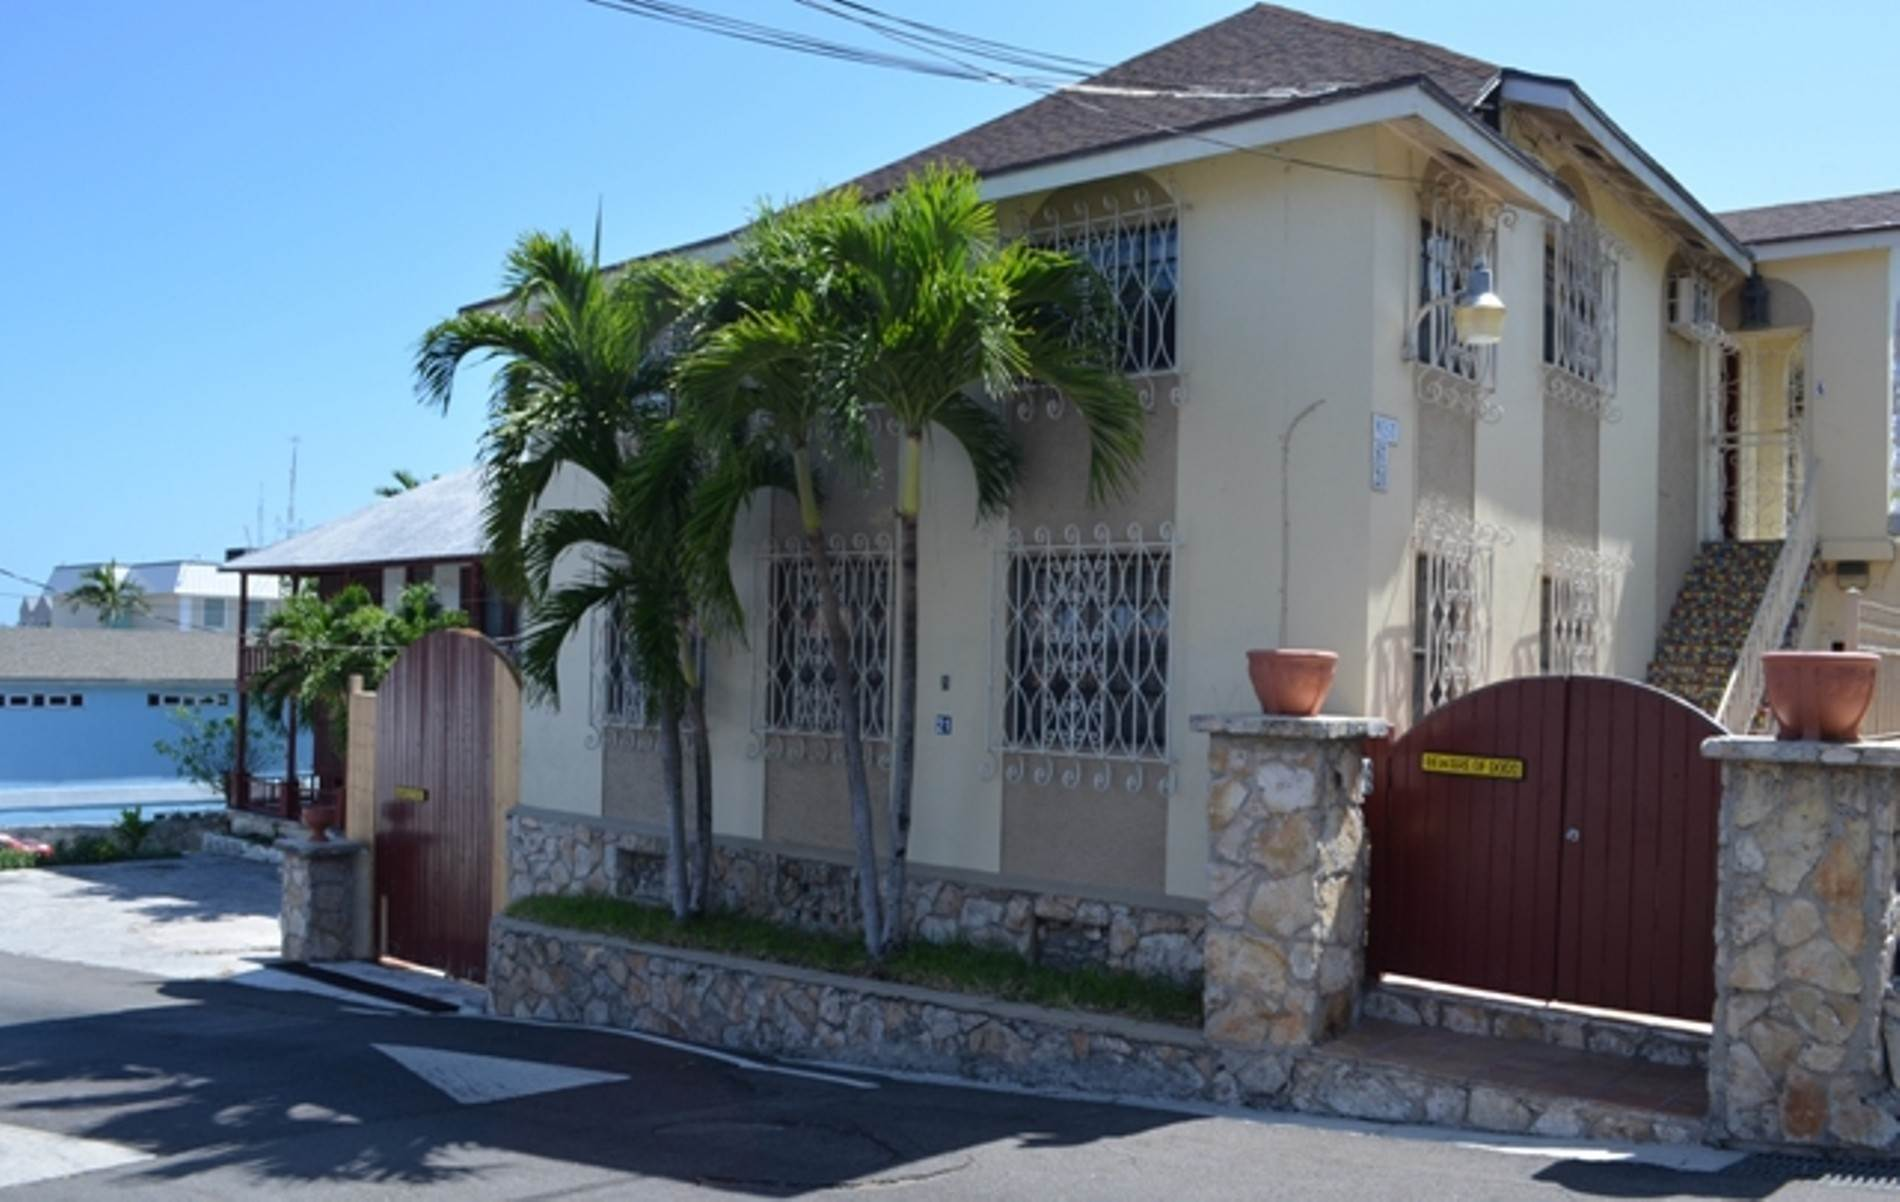 Commercial for Sale at Commercial Buildings Near Town - MLS 39003 Old Nassau, Nassau And Paradise Island, Bahamas